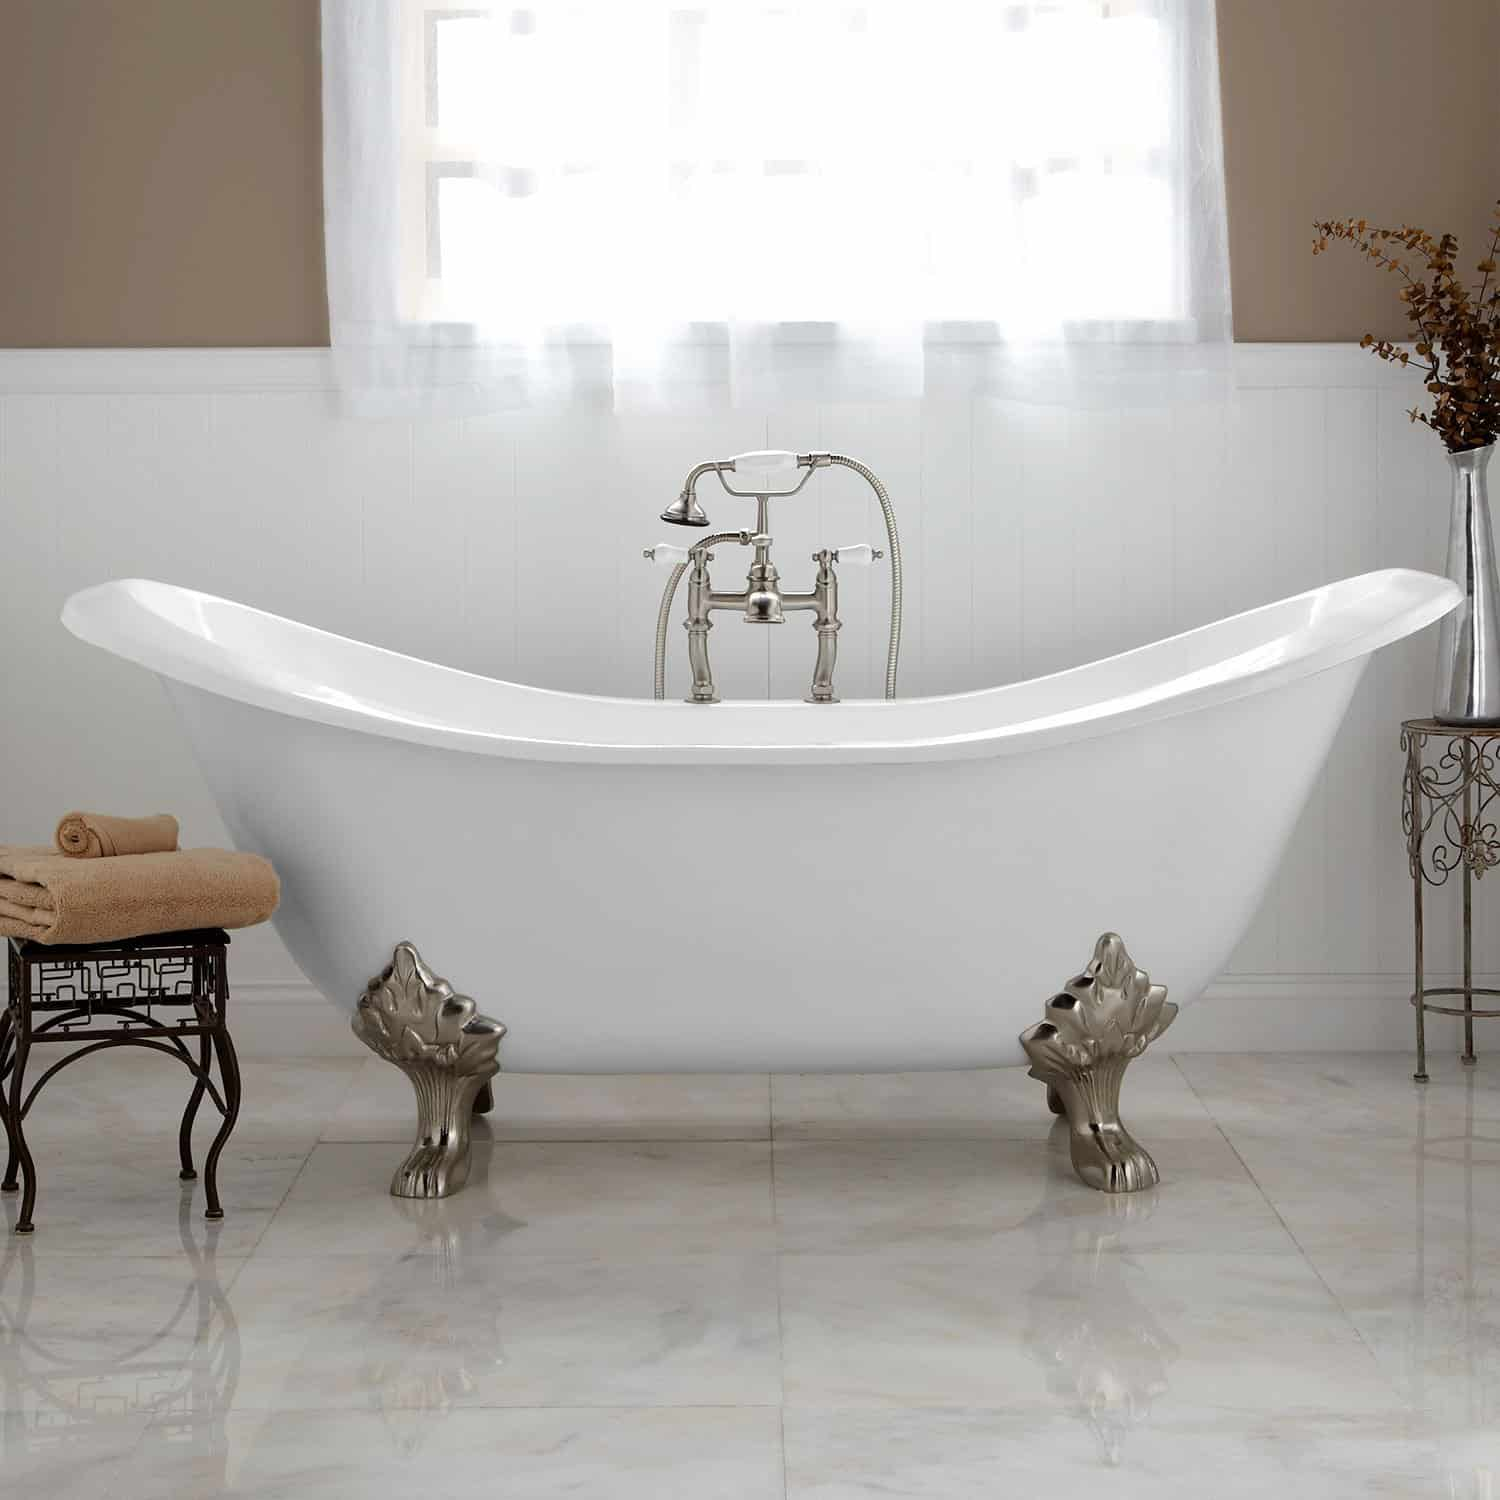 interior with copper tubs bathtub mcquire on tub bright claw clawfoot feet slipper hammered